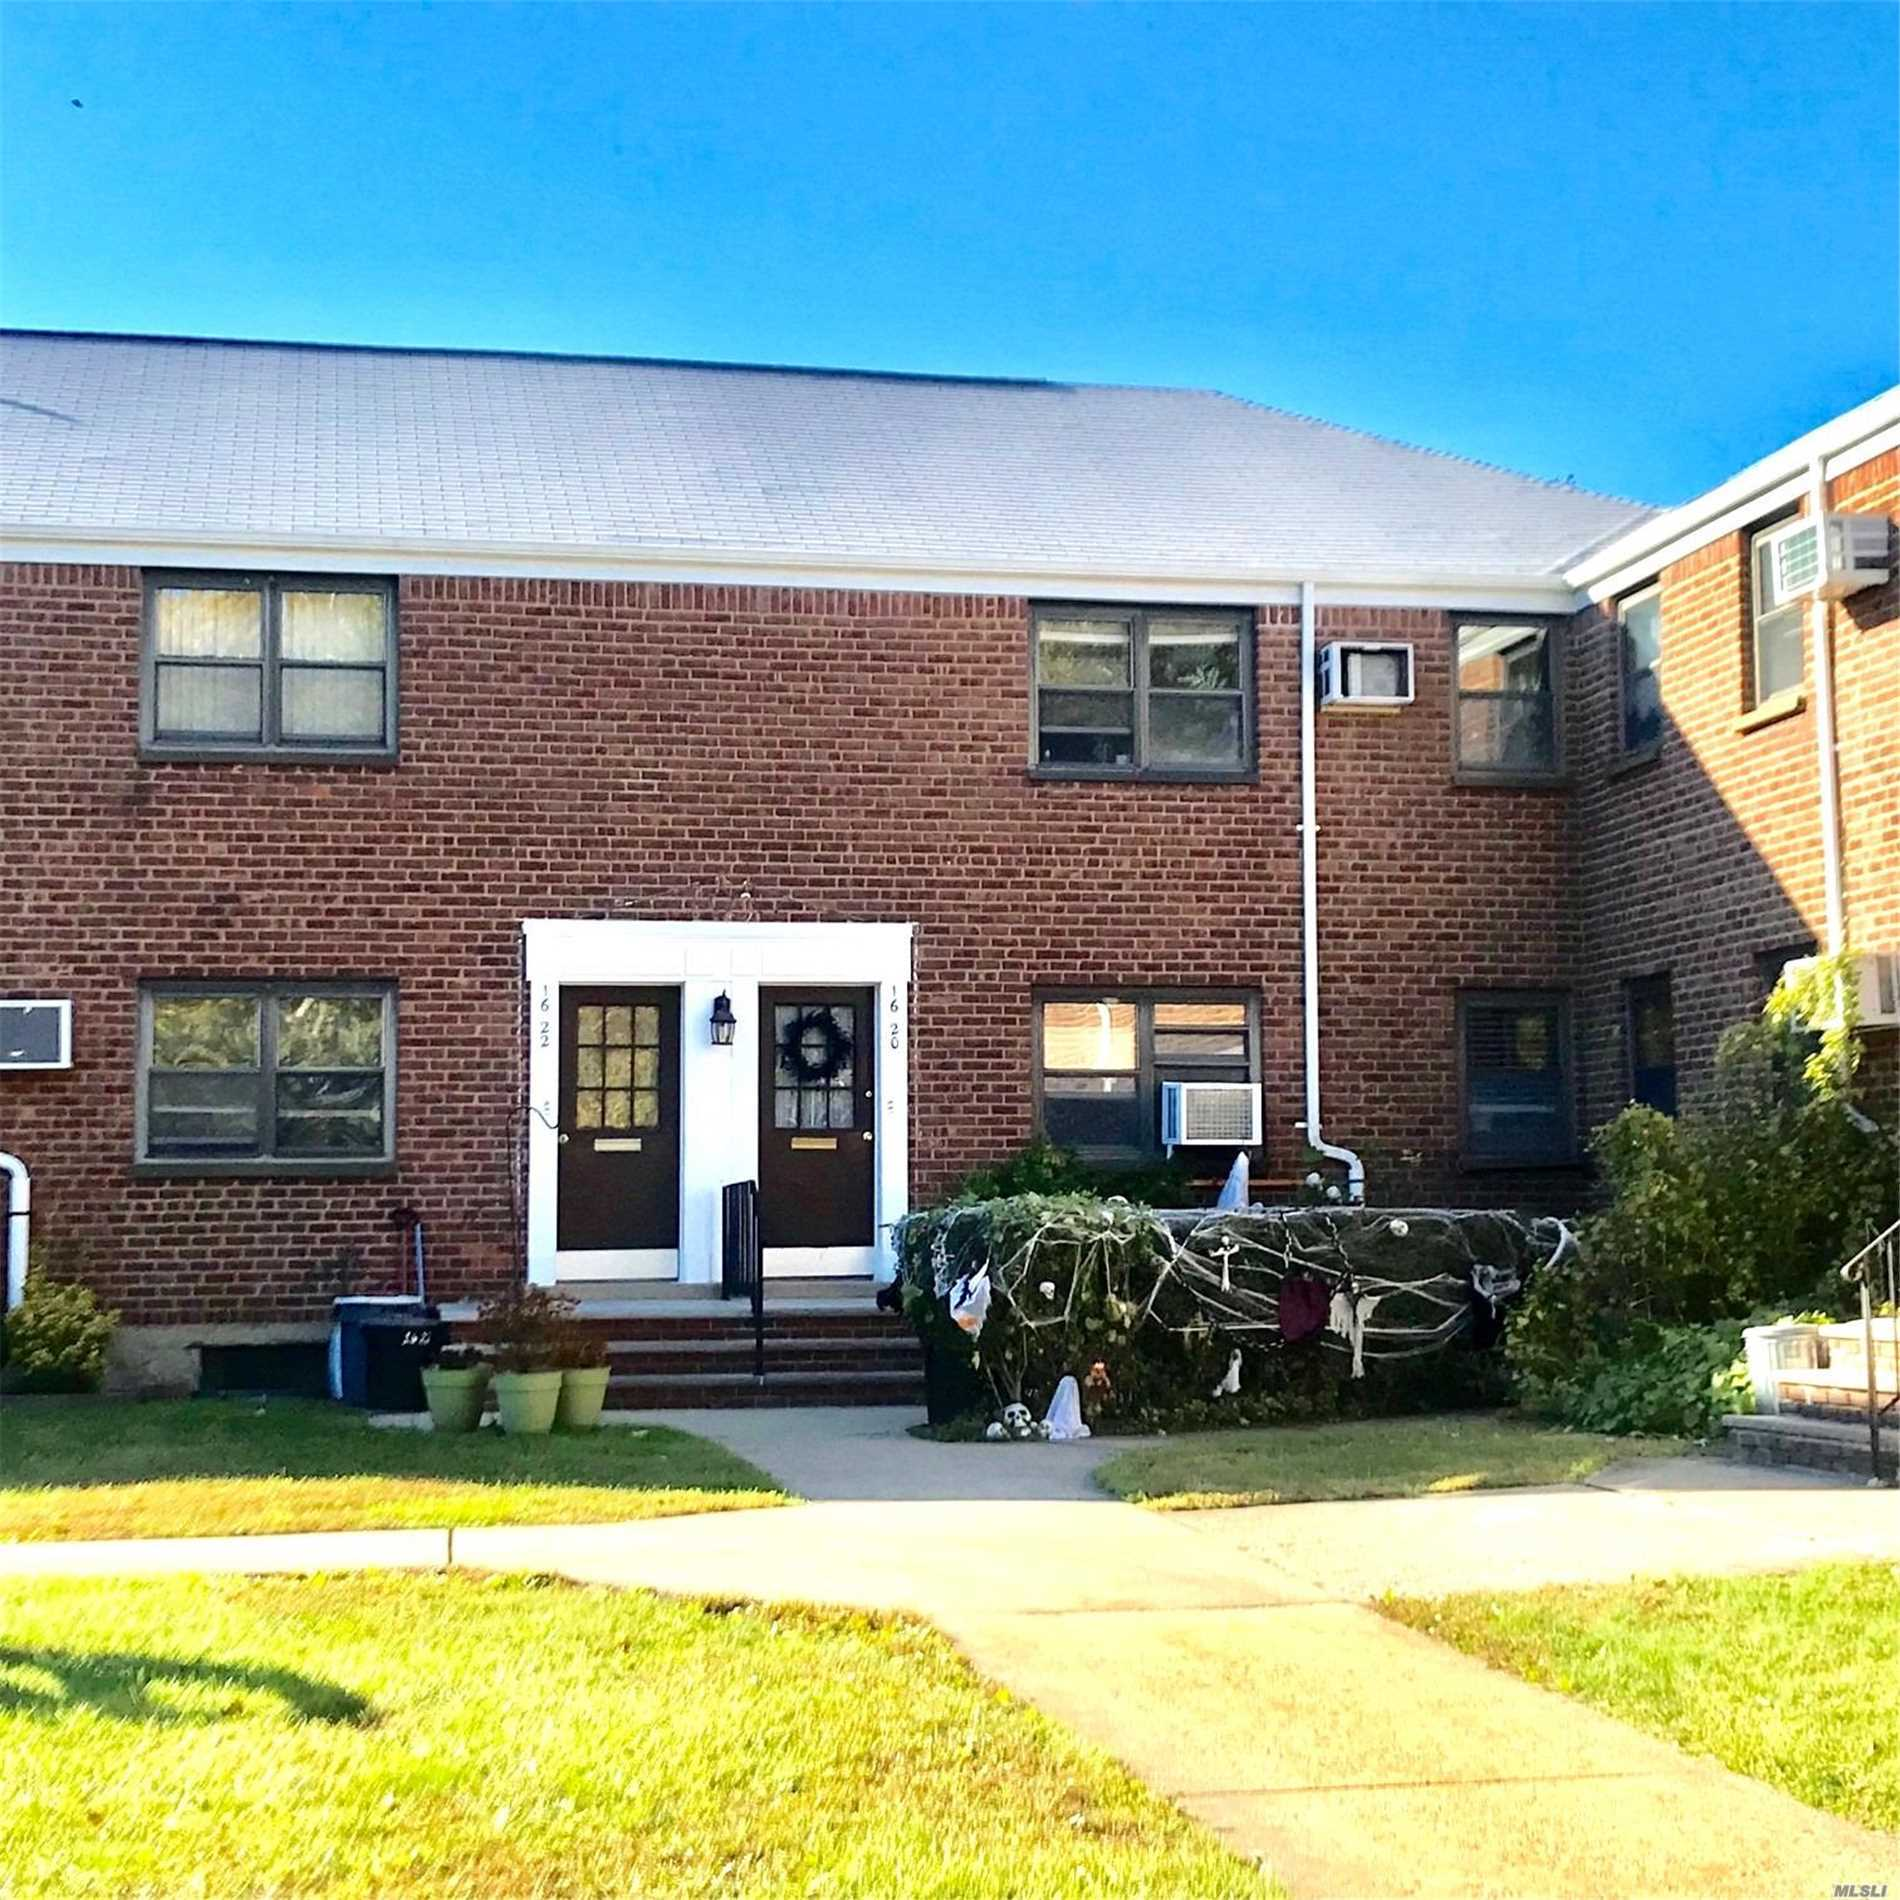 Move Right Into Sun Drenched Newly Renovated Home! First Floor Unit, Totally Renovated Open Layout Kitchen With Large Capacity Washer And Dryer, Stainless Appliances, Hardwood Floors, Led High Hats, Crown Molding, Updated Electric And Plumbing, Cat Friendly, Plenty Of Street Parking, Local Buses And Express Bus To The City, Dining, Shopping!!